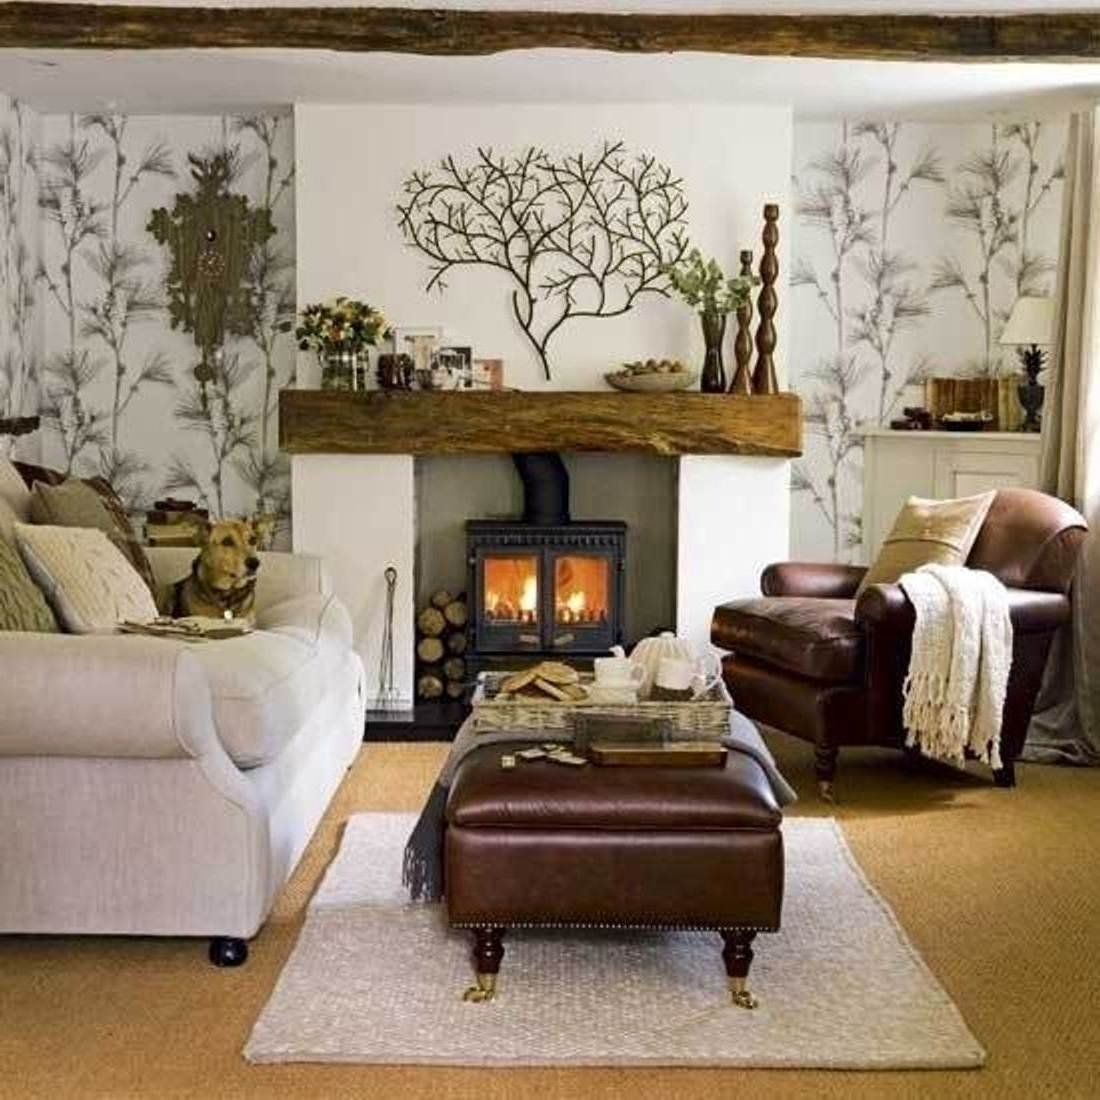 10 Beautiful Country Style Living Room Ideas country style living room design ideas country style living room 2021